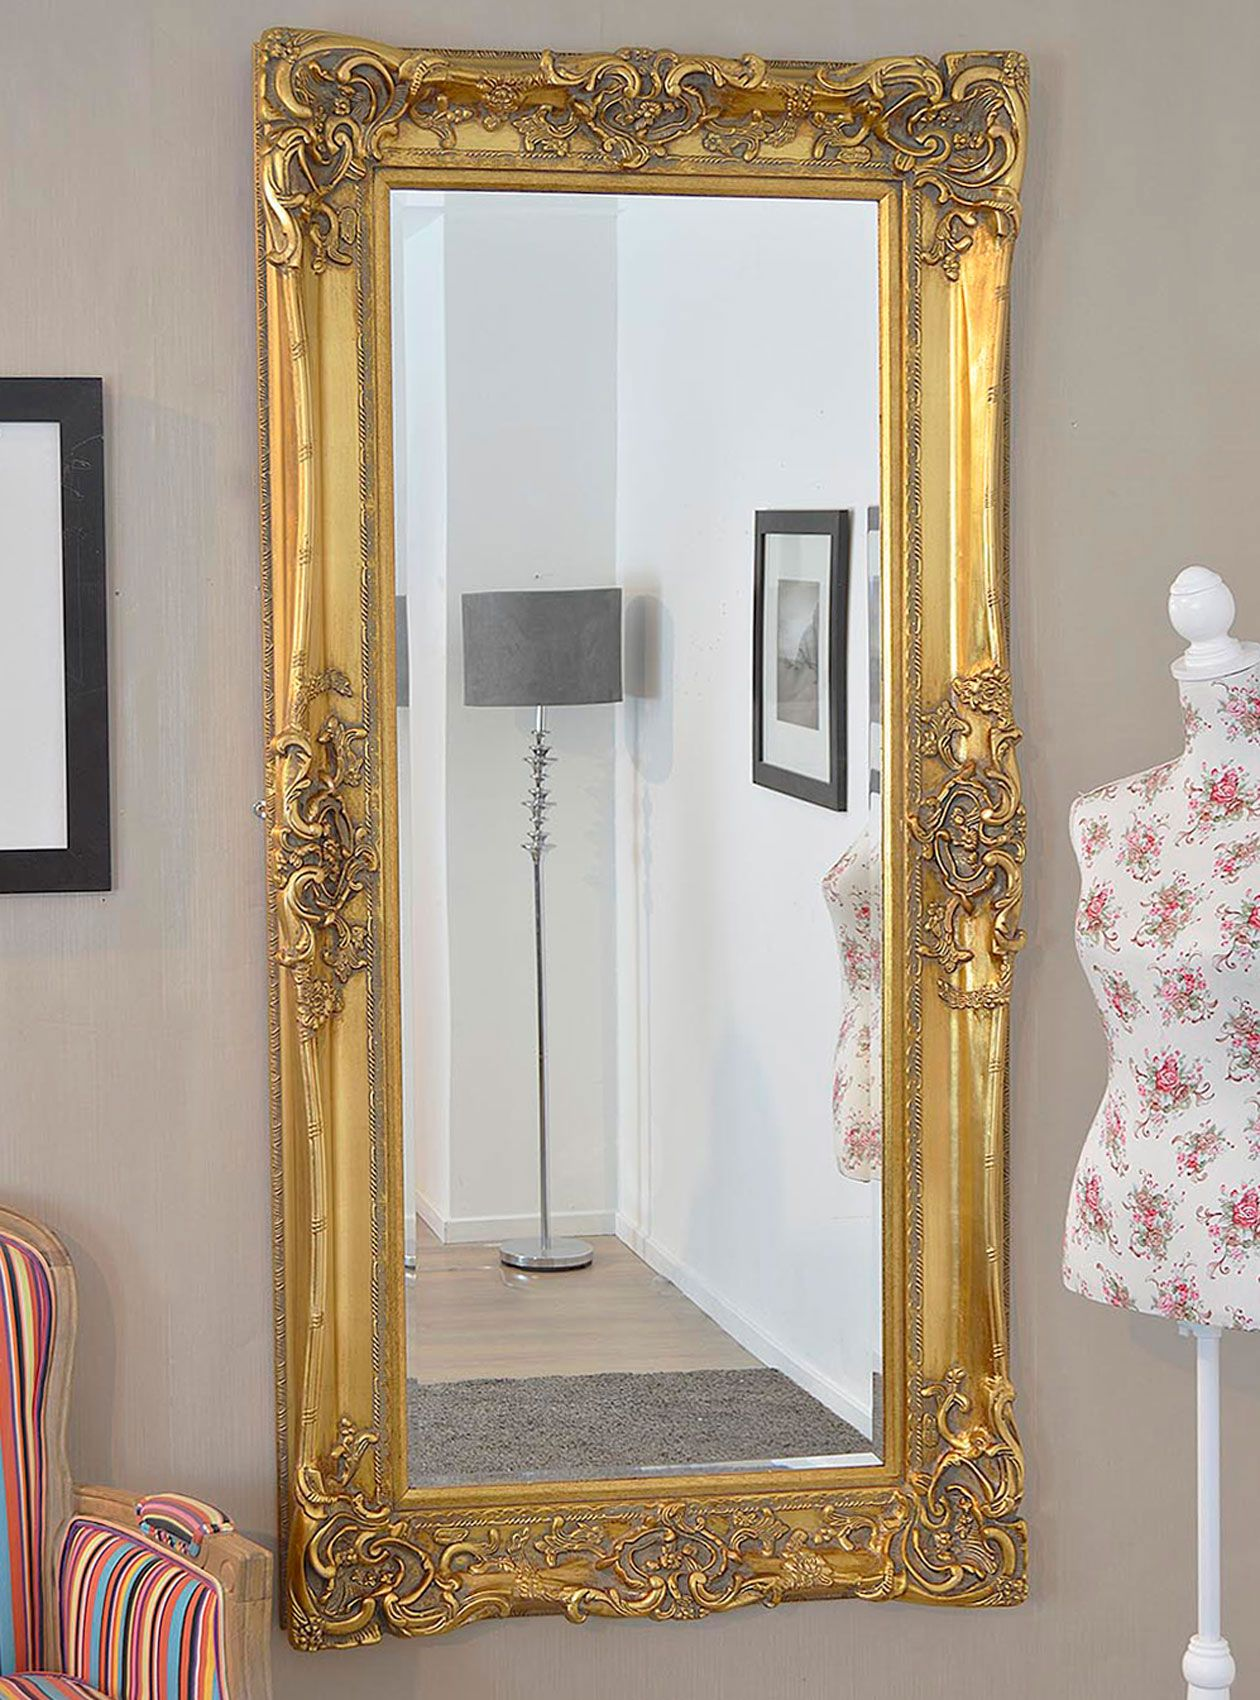 This Antique Design Ornate Wall Mirror Will Make A Beautiful